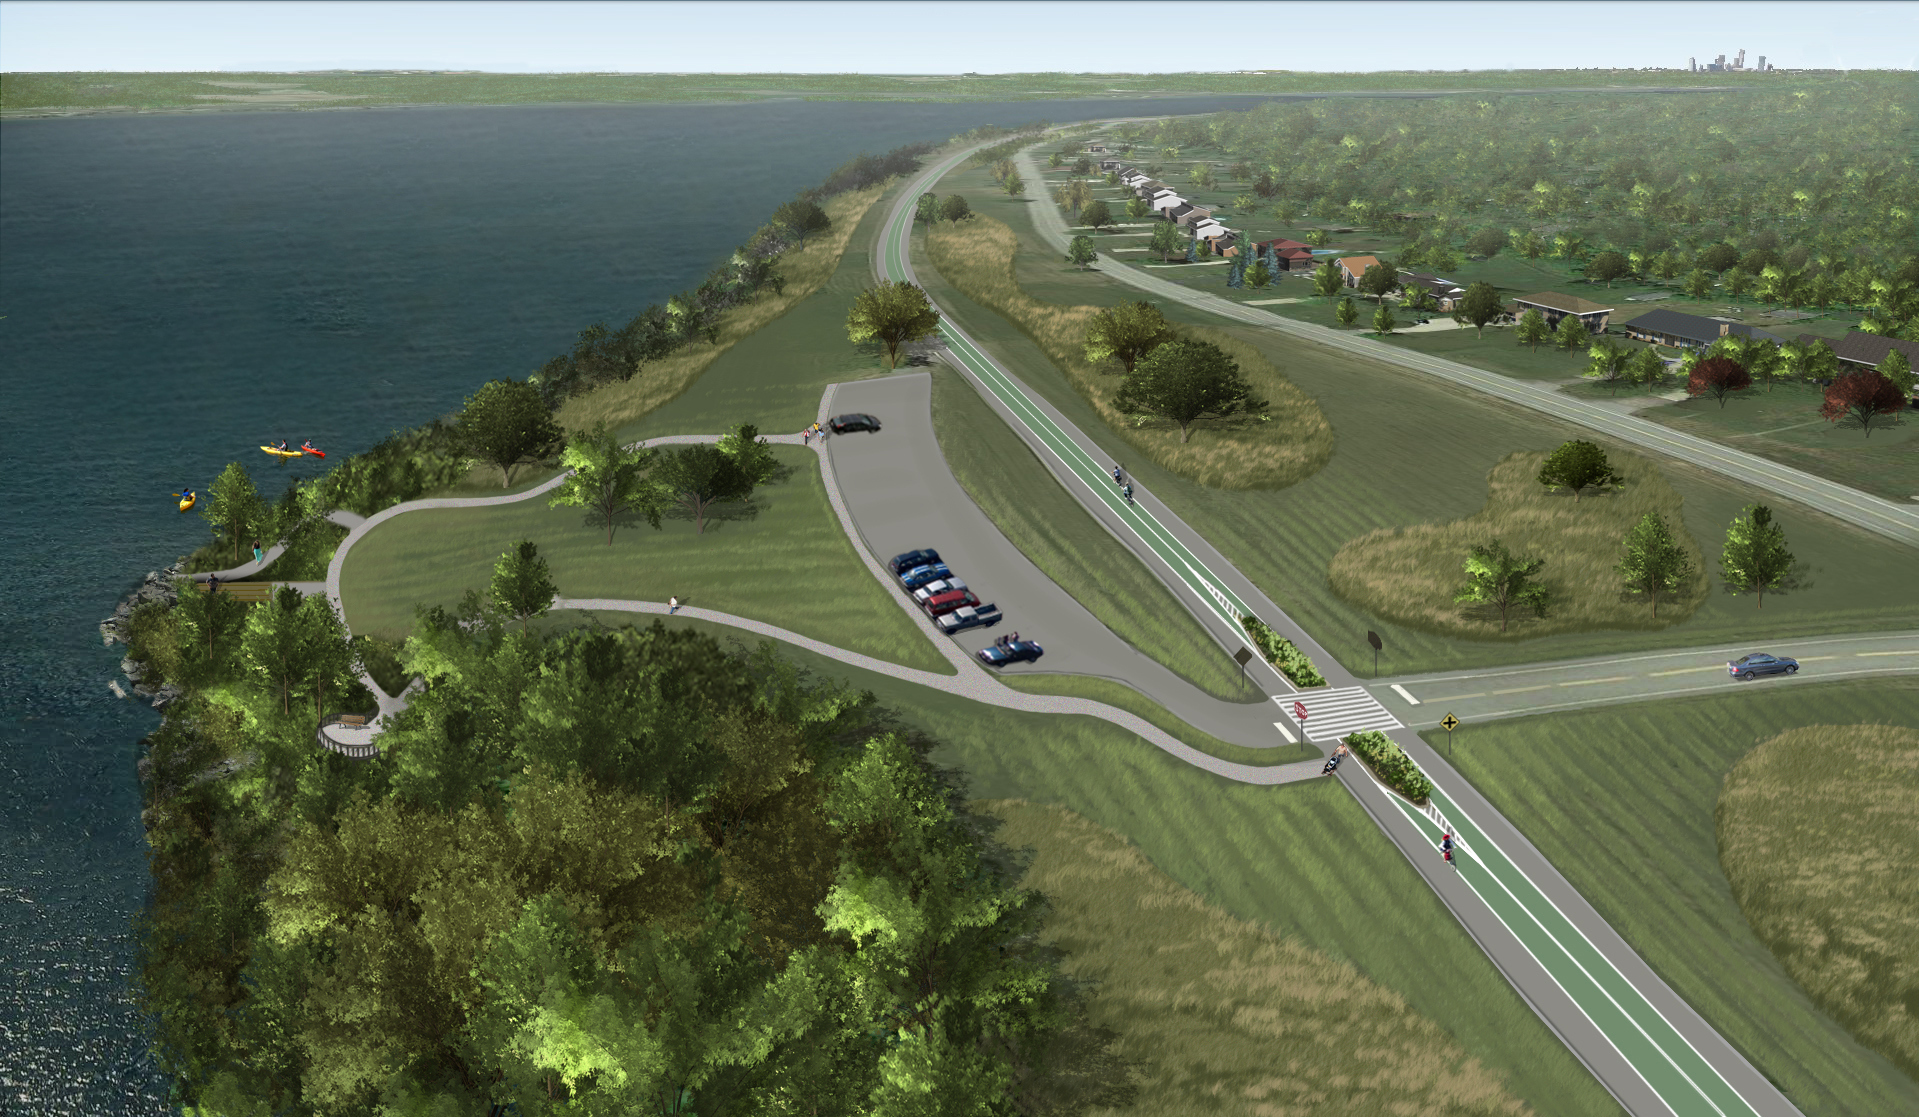 A rendering of what West River Parkway on Grand Island is expected to look like after New York State closes the road to vehicle traffic and converts it into an eight-mile long trail for bicyclists and pedestrians. (Courtesy New York State Office of Parks, Recreation and Historic Preservation)